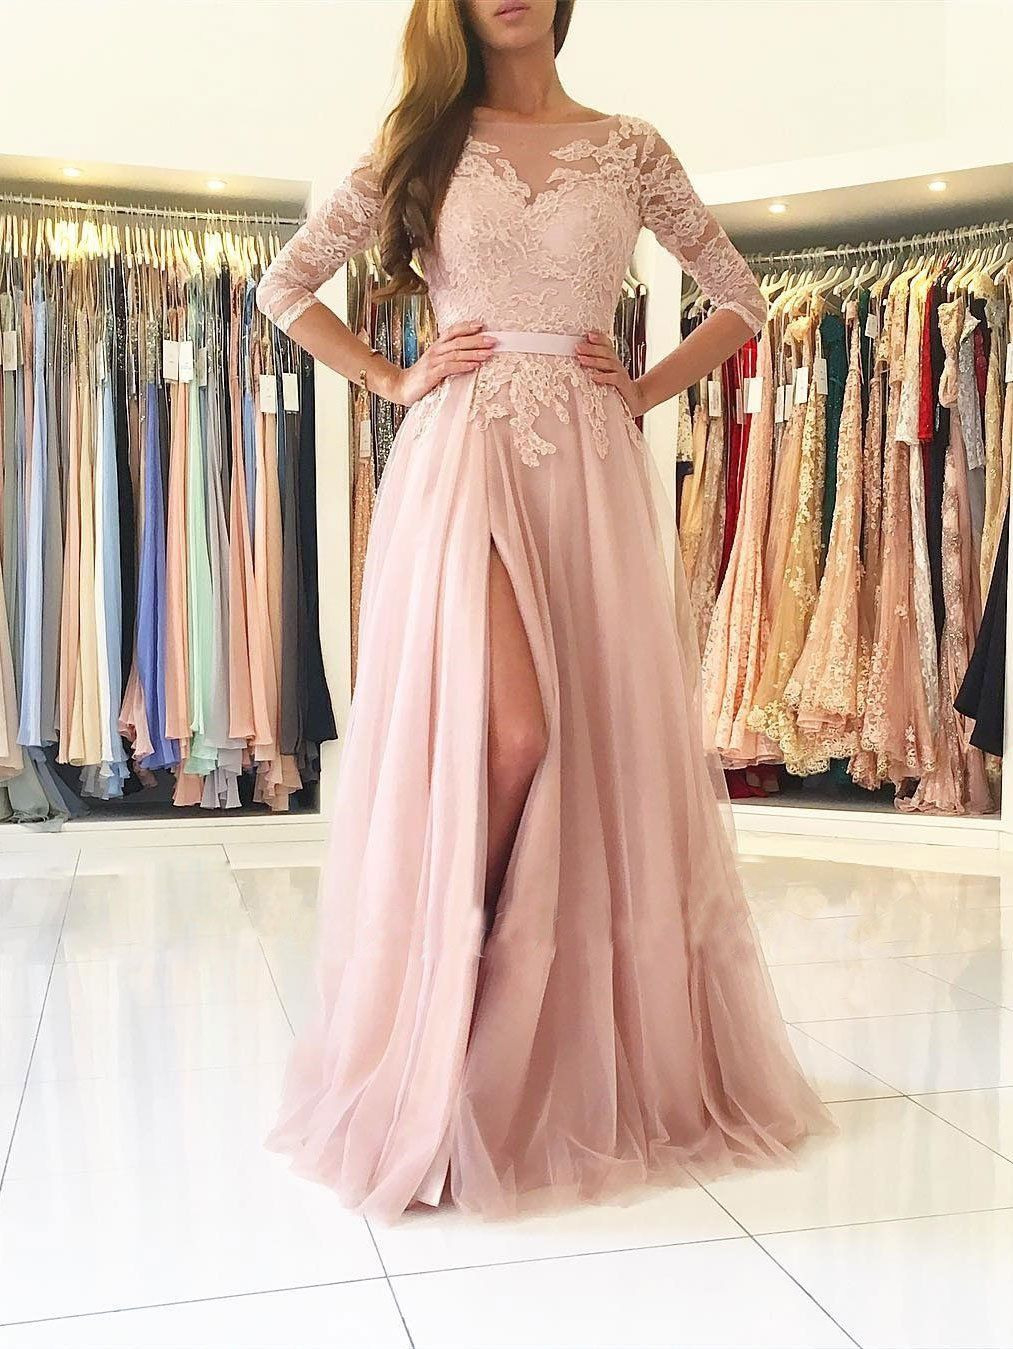 17 Schön Abendkleid Definition Stylish10 Genial Abendkleid Definition für 2019